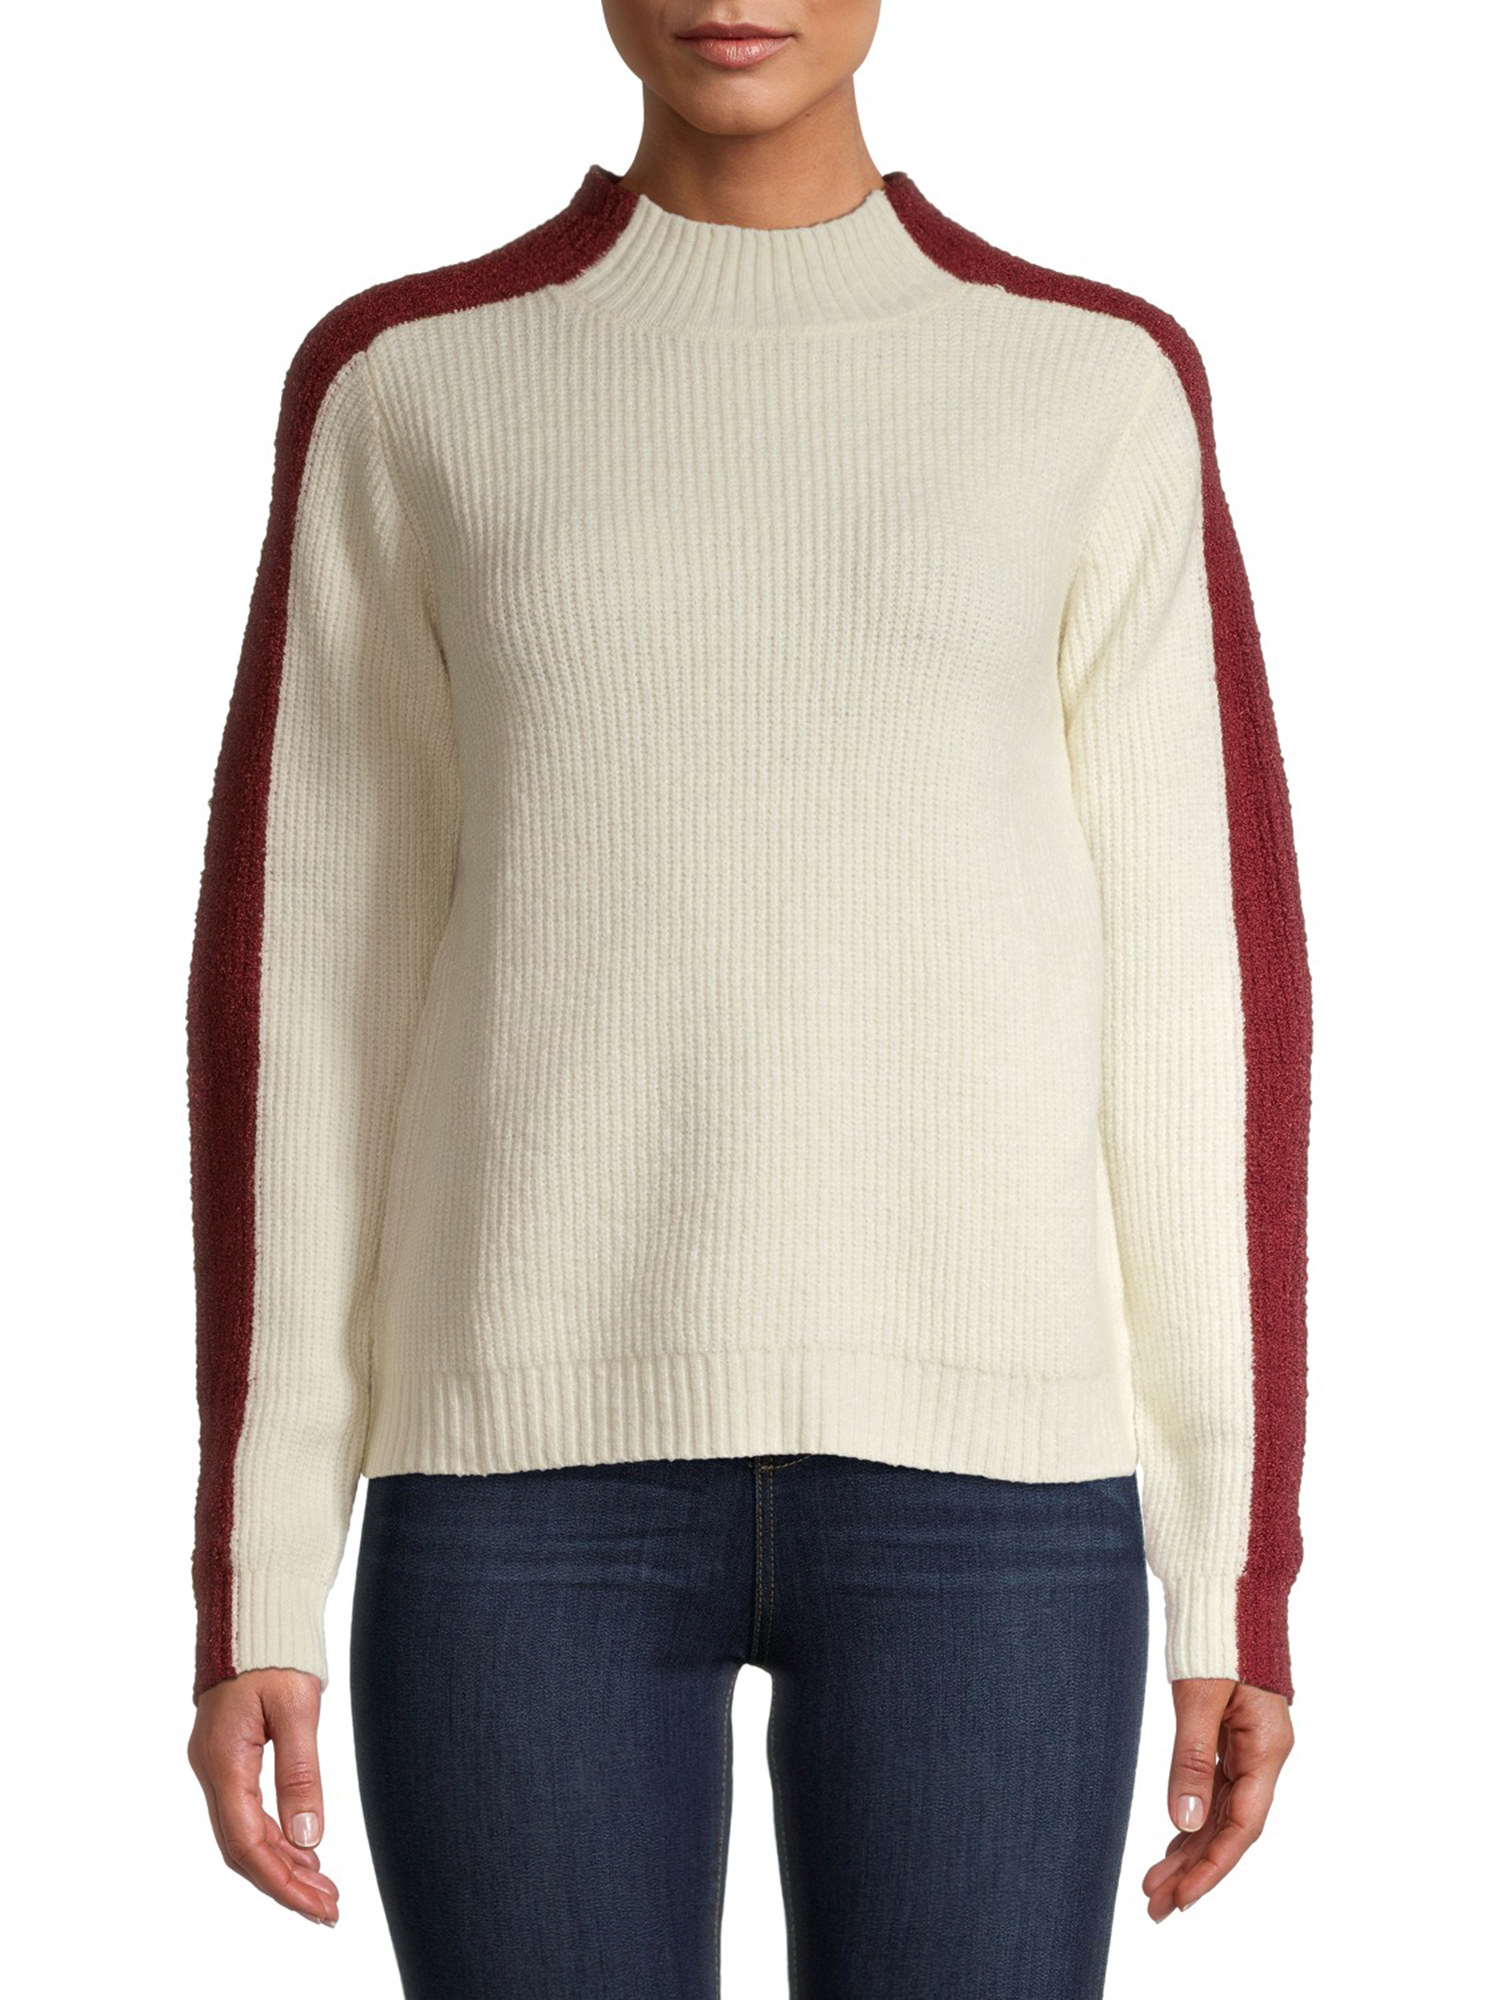 Model wearing white sweater with red stripes